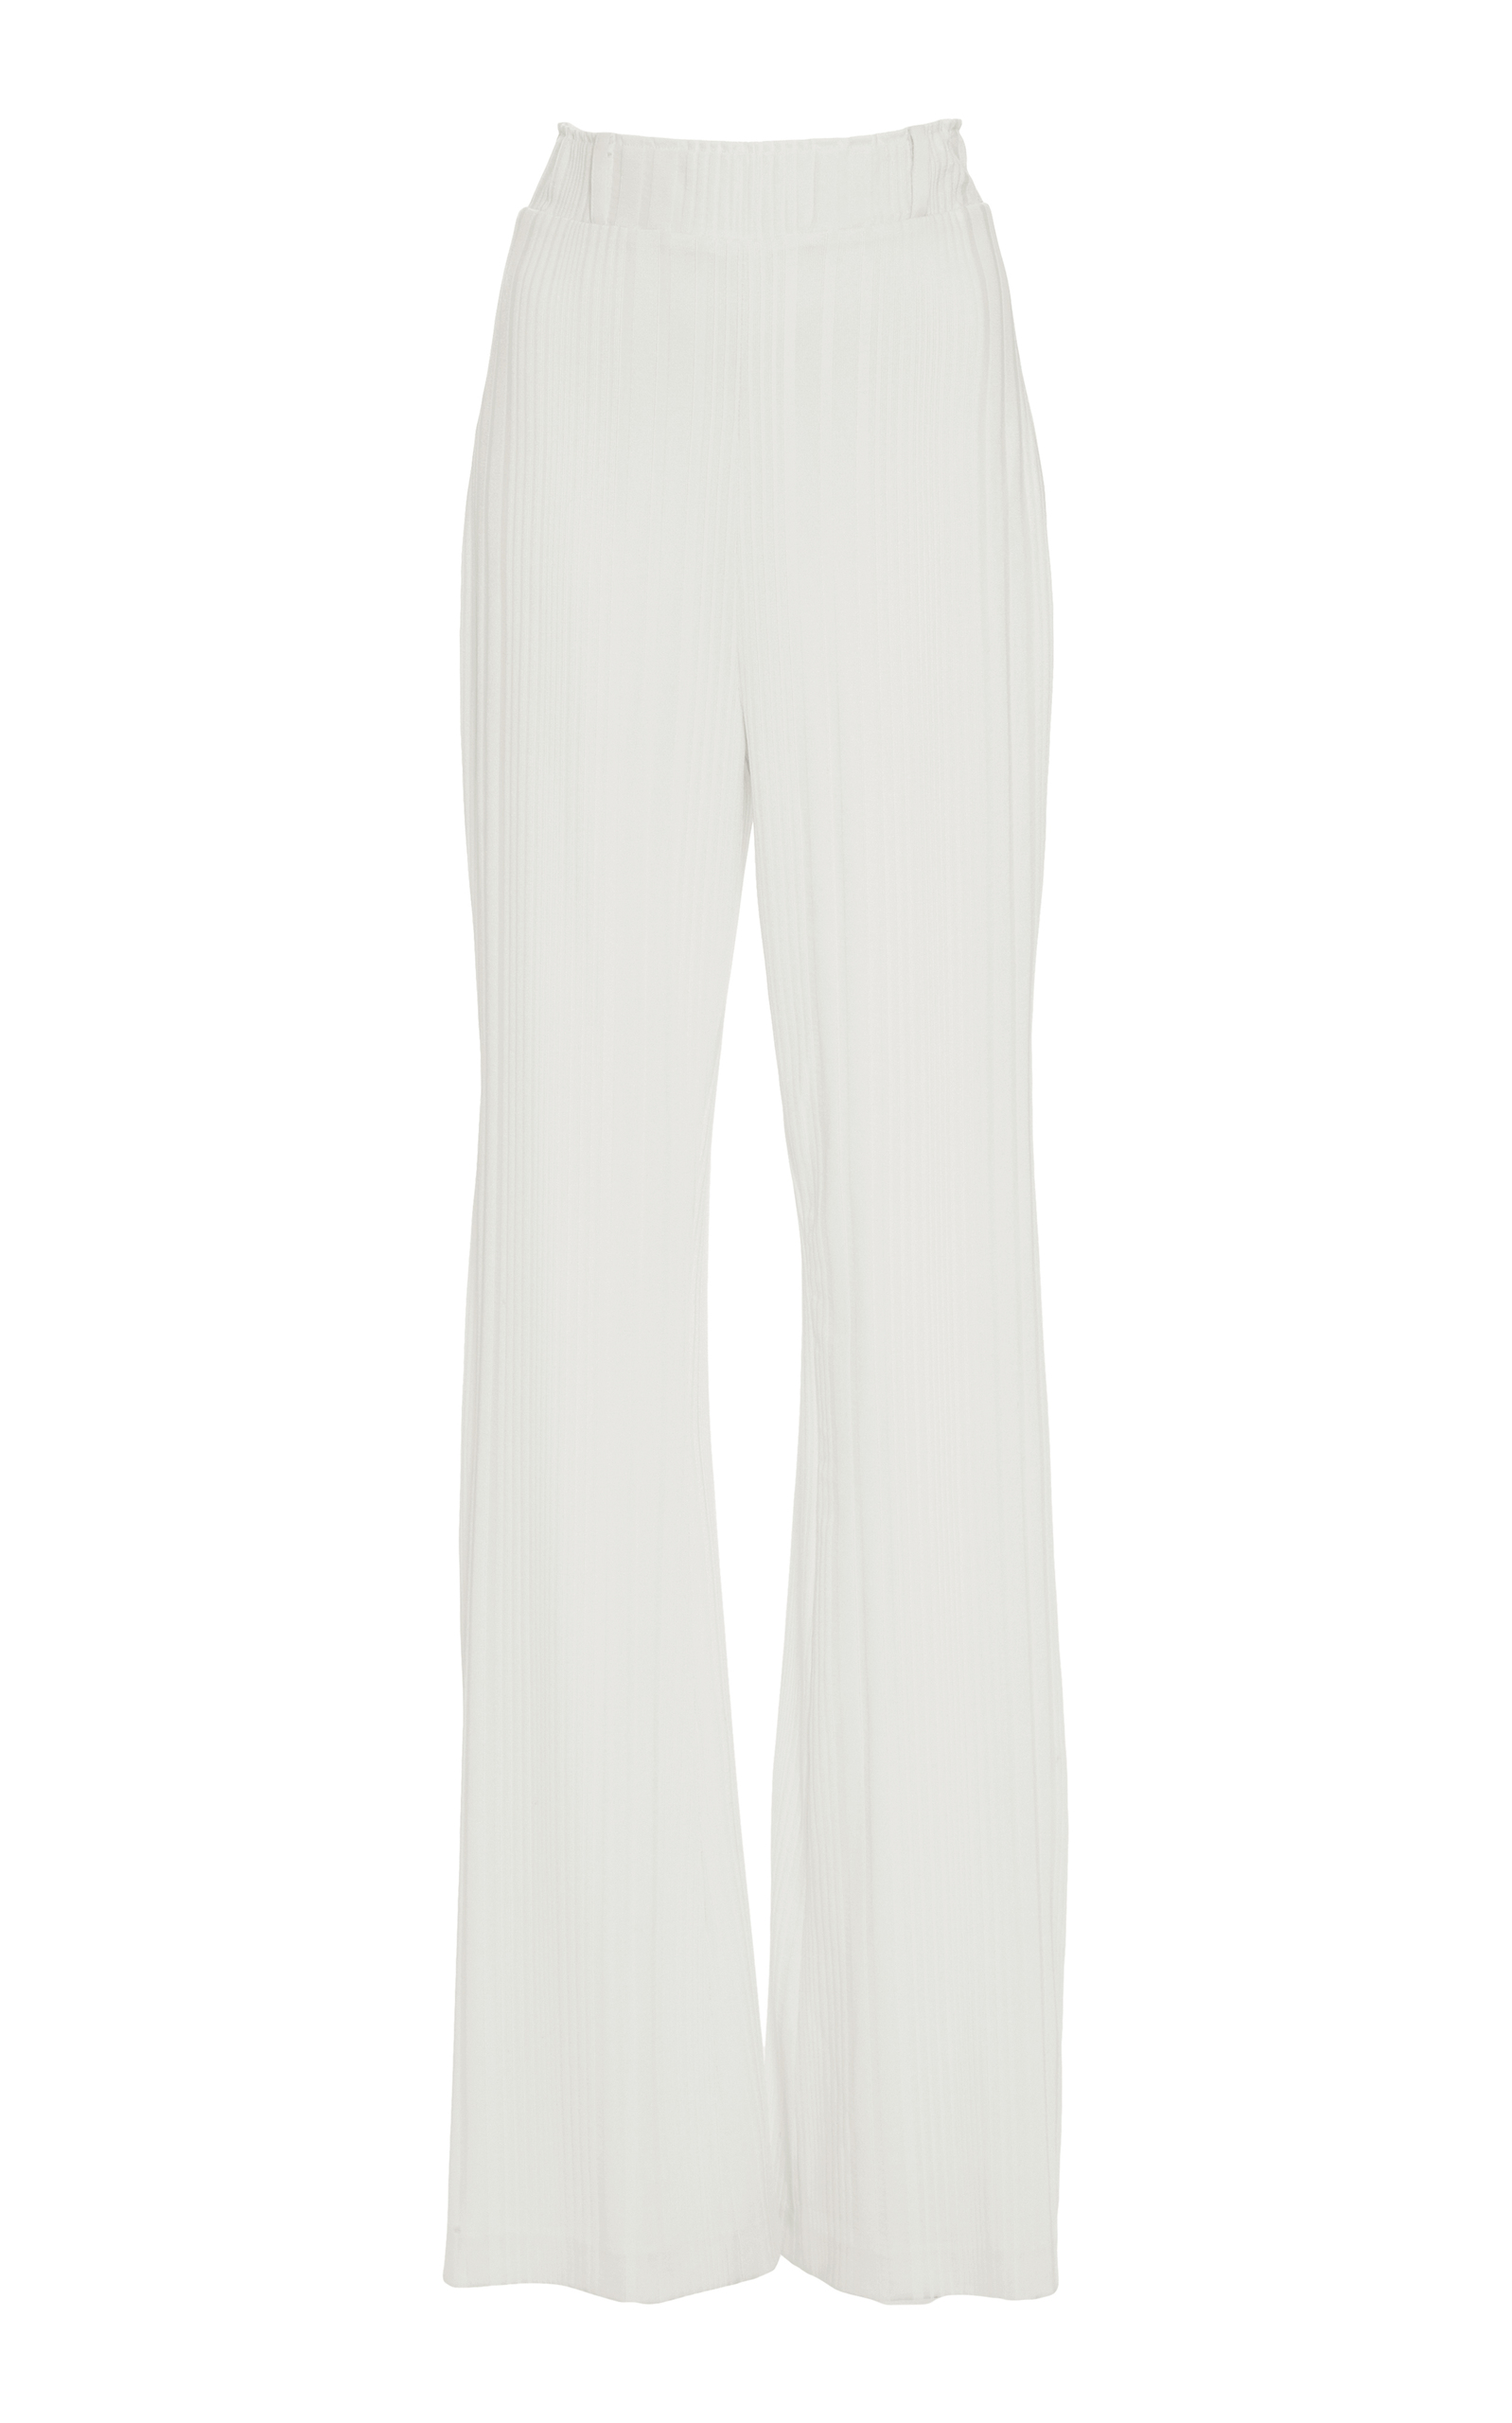 ELEANOR BALFOUR Jacquetta Pants in White